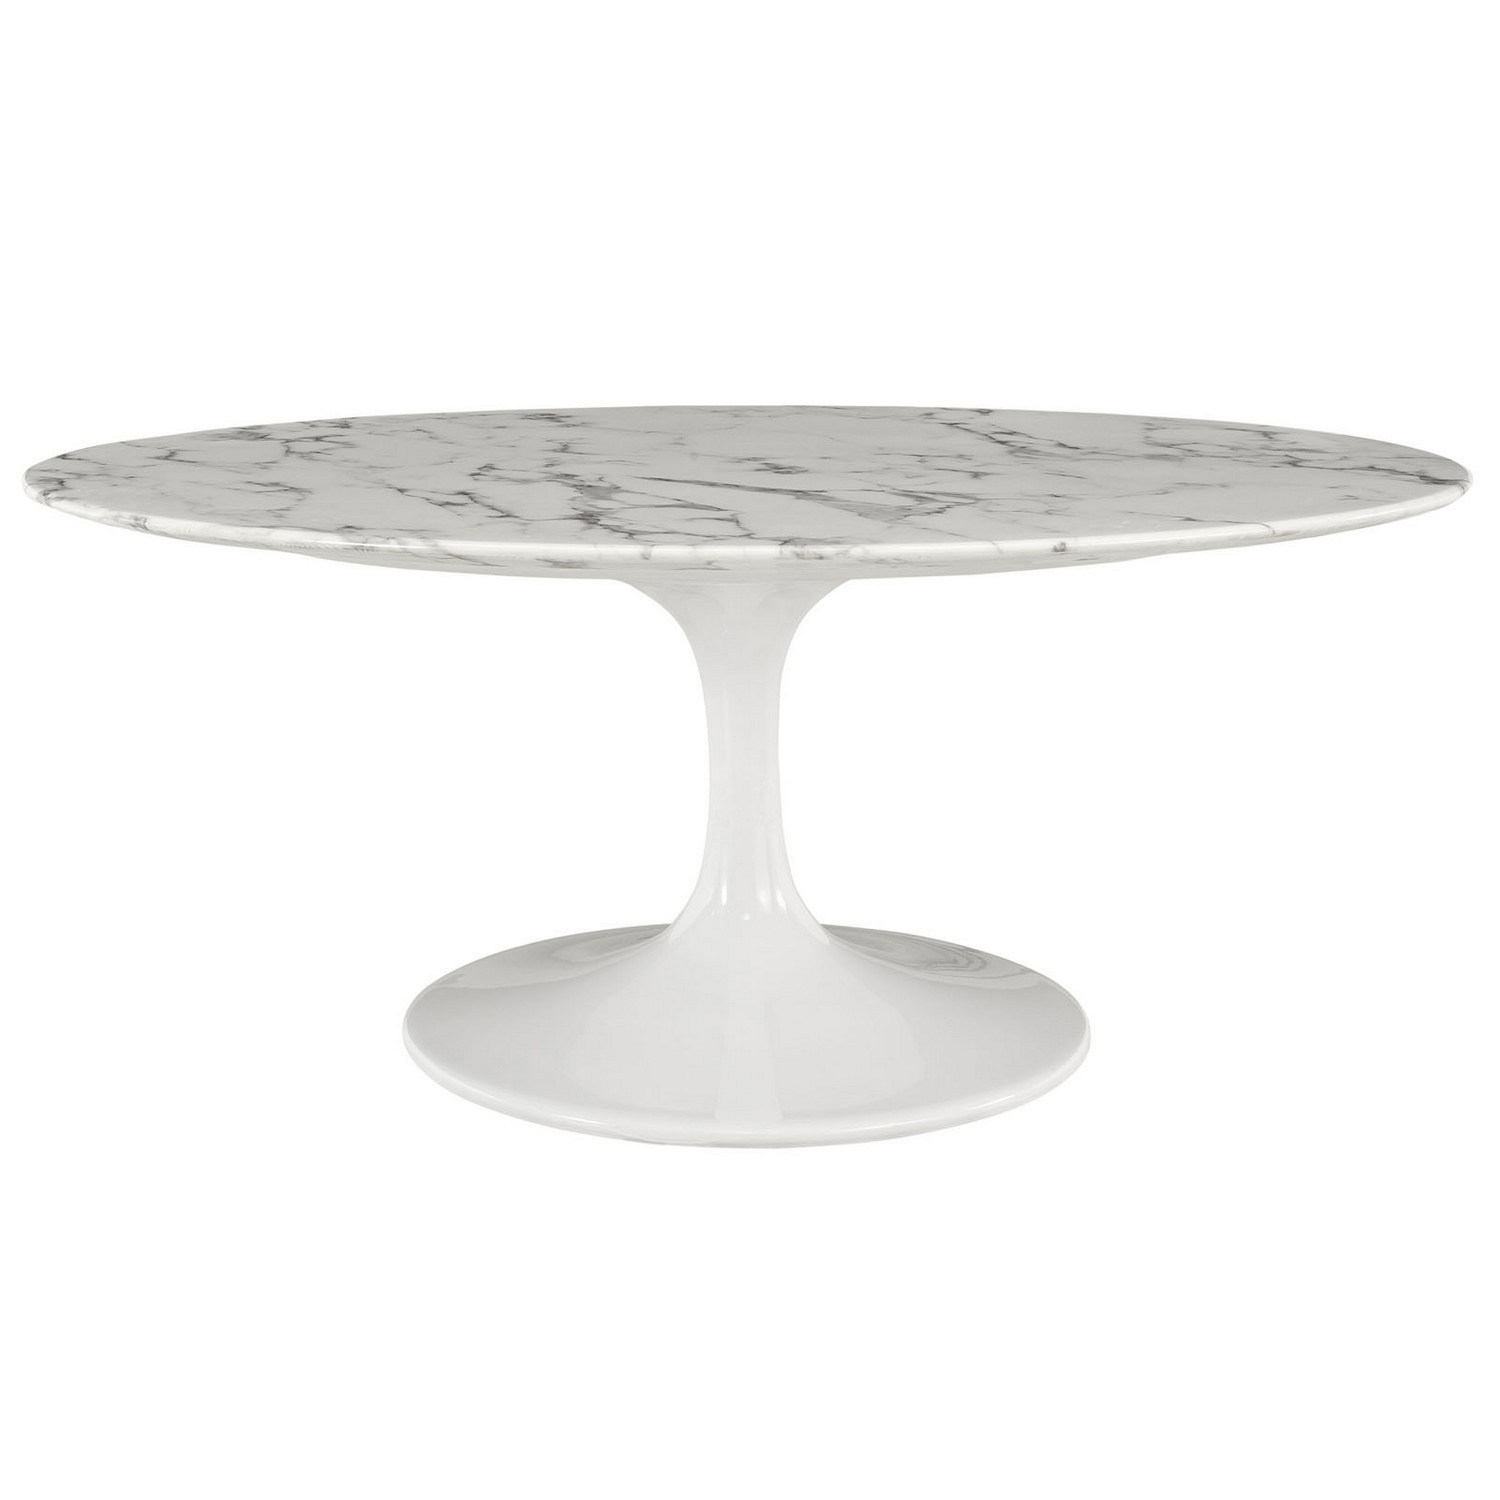 Modway Lippa 42 Oval-Shaped Artificial Marble Coffee Table - White